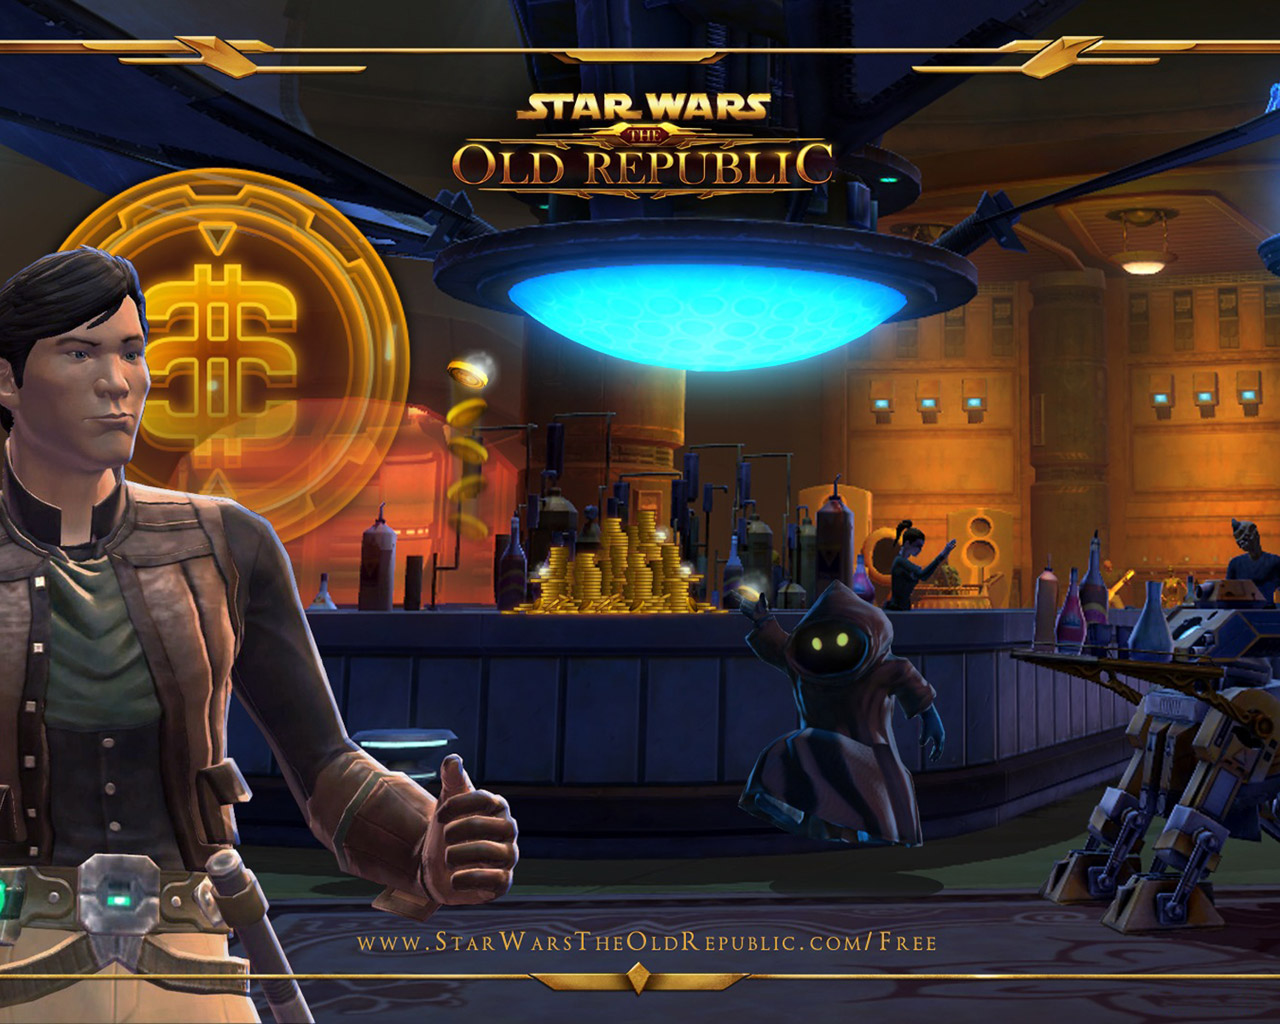 Free Star Wars: The Old Republic Wallpaper in 1280x1024